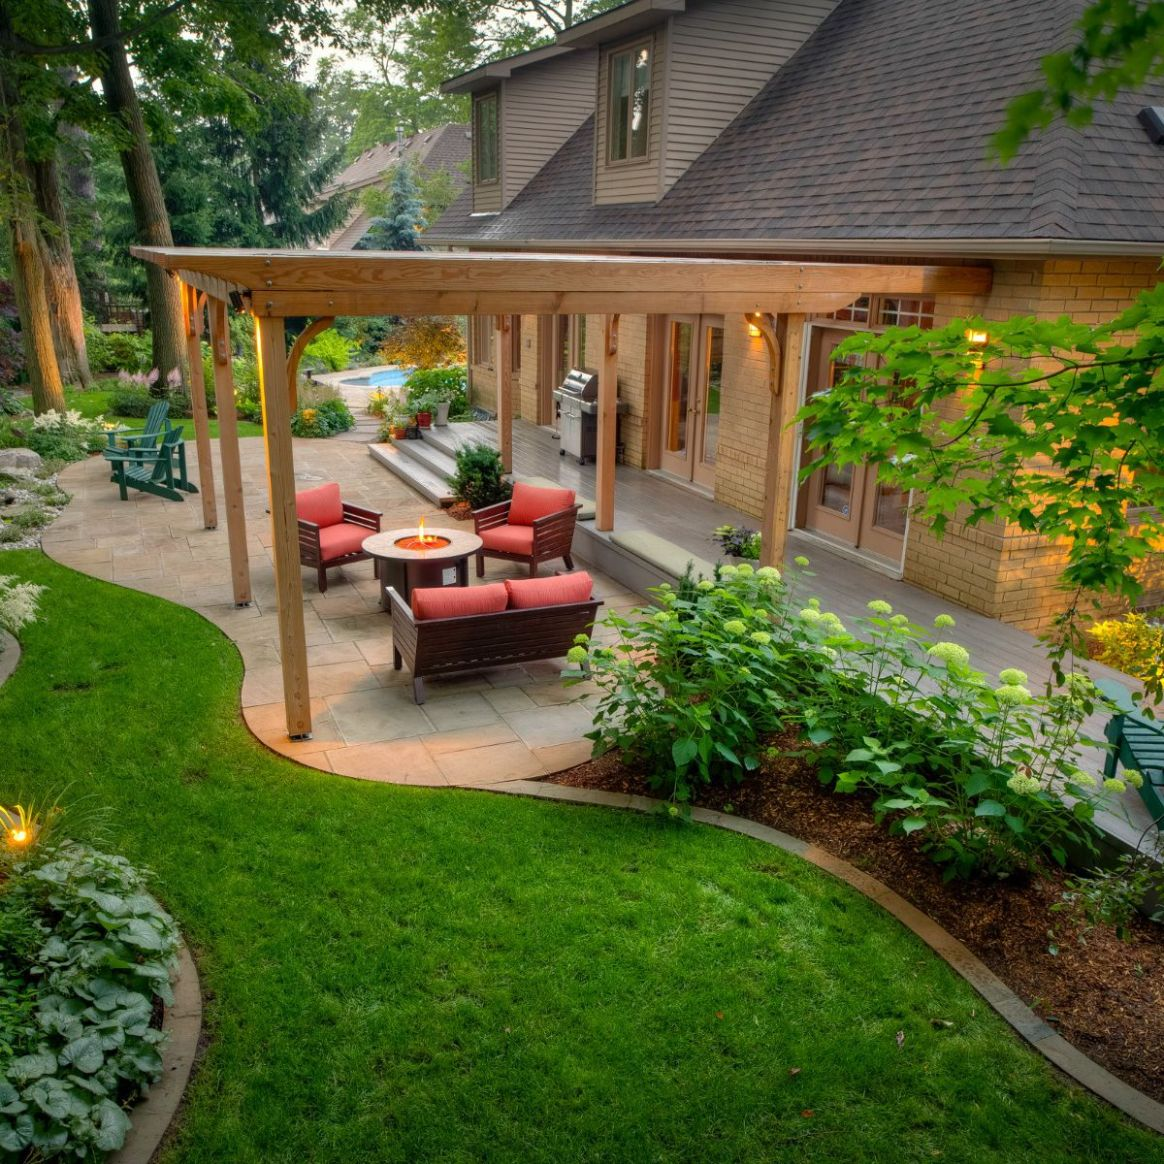 9 Backyard Landscaping Ideas to Inspire You - backyard ideas texas